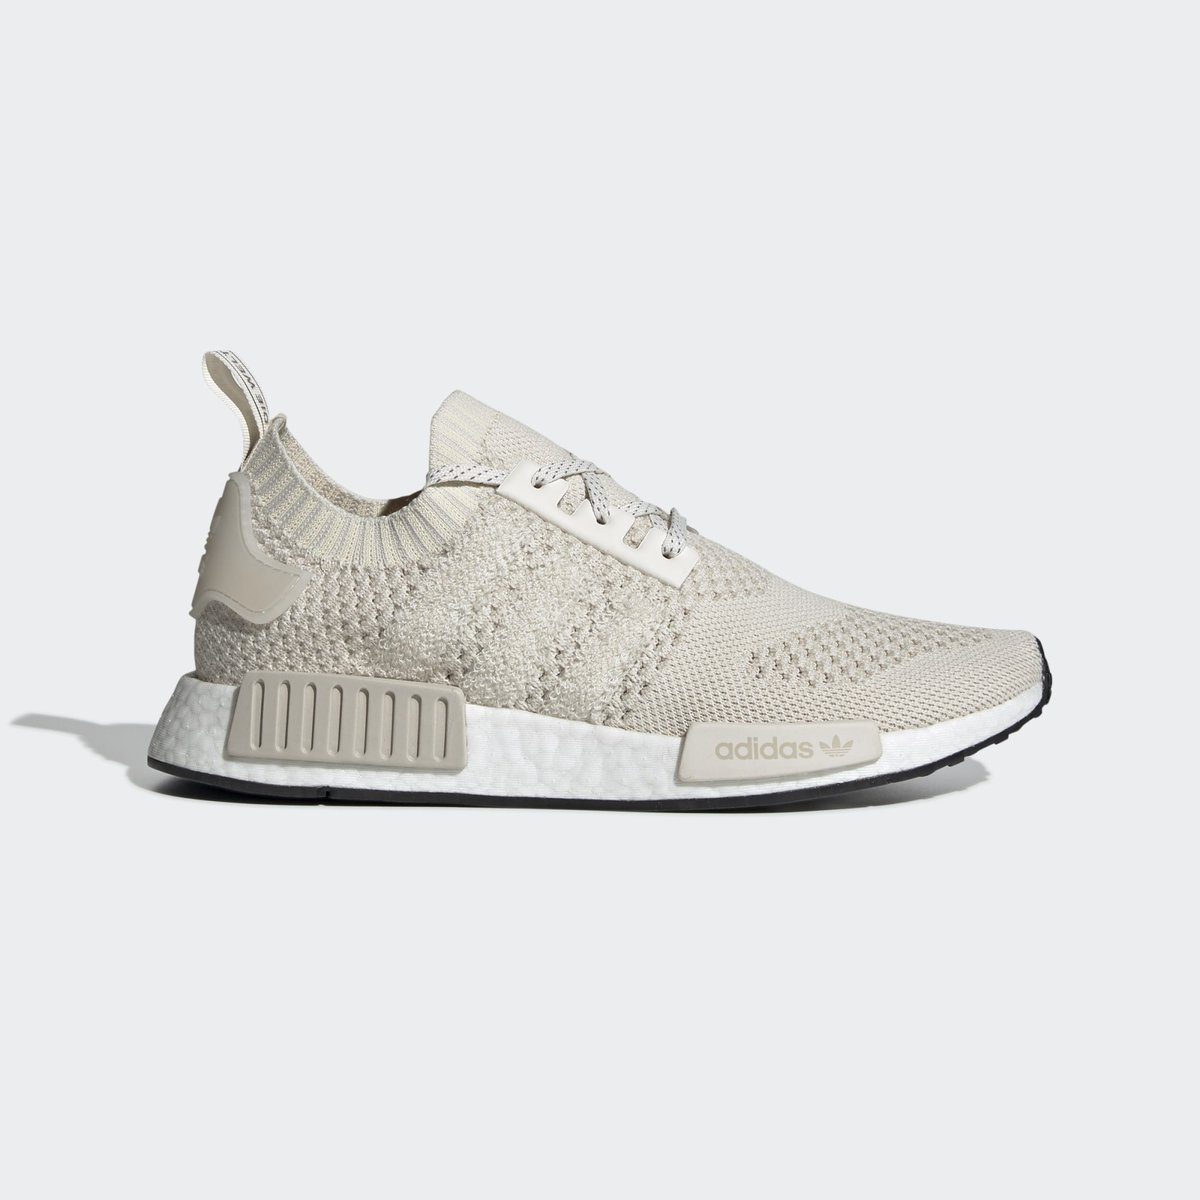 d920f217b8620 Now available on  adidas EU. adidas NMD R1 Primeknit. UK http